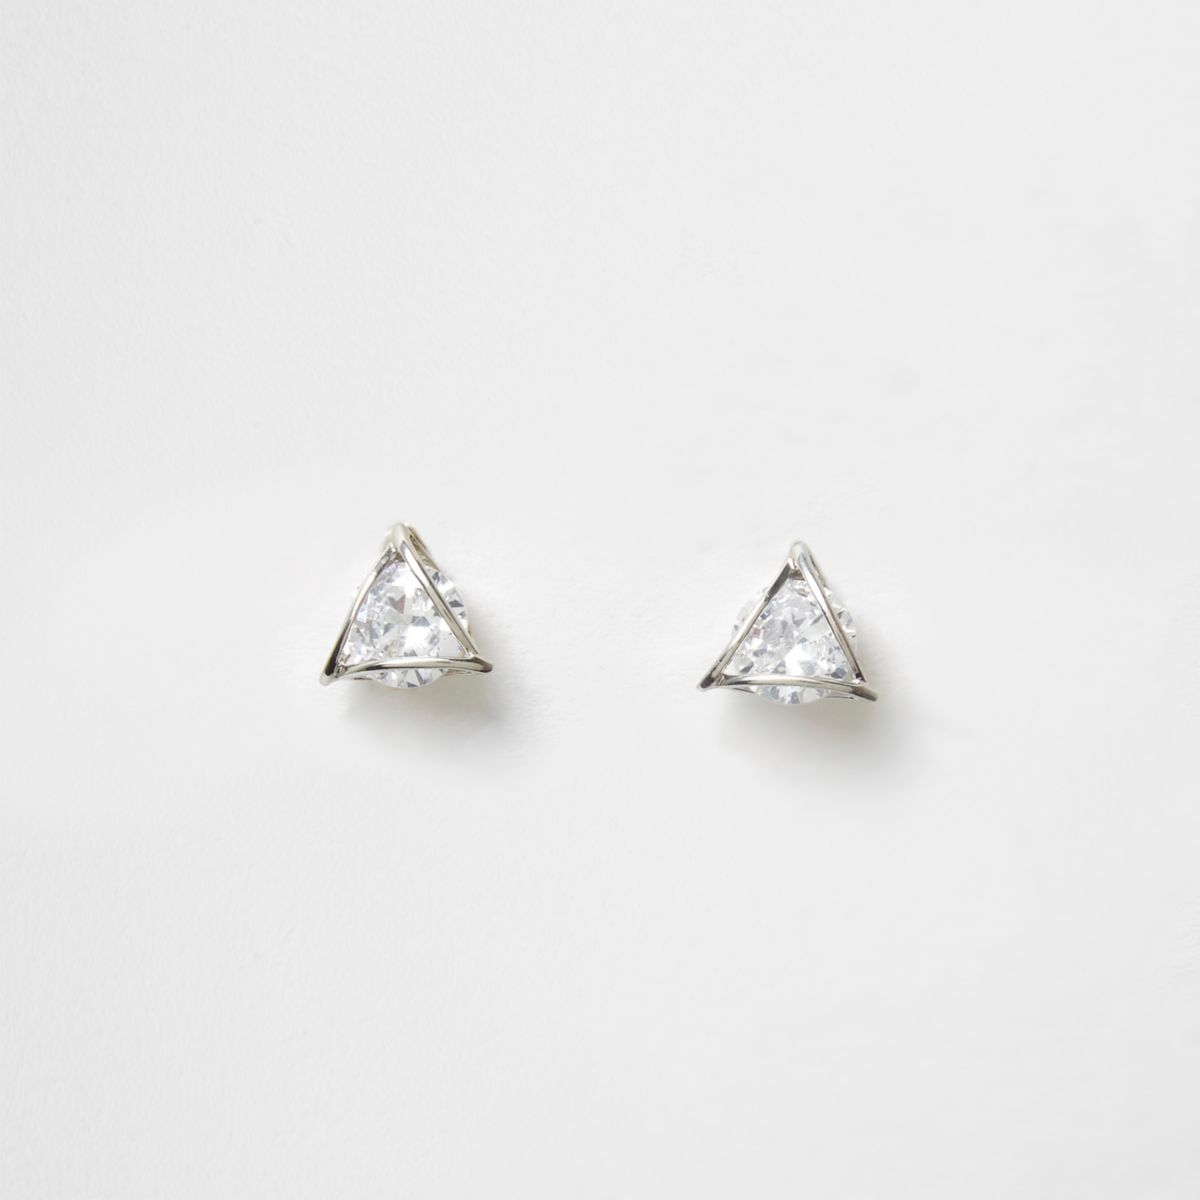 Cubic zirconia rhinestone triangle earrings